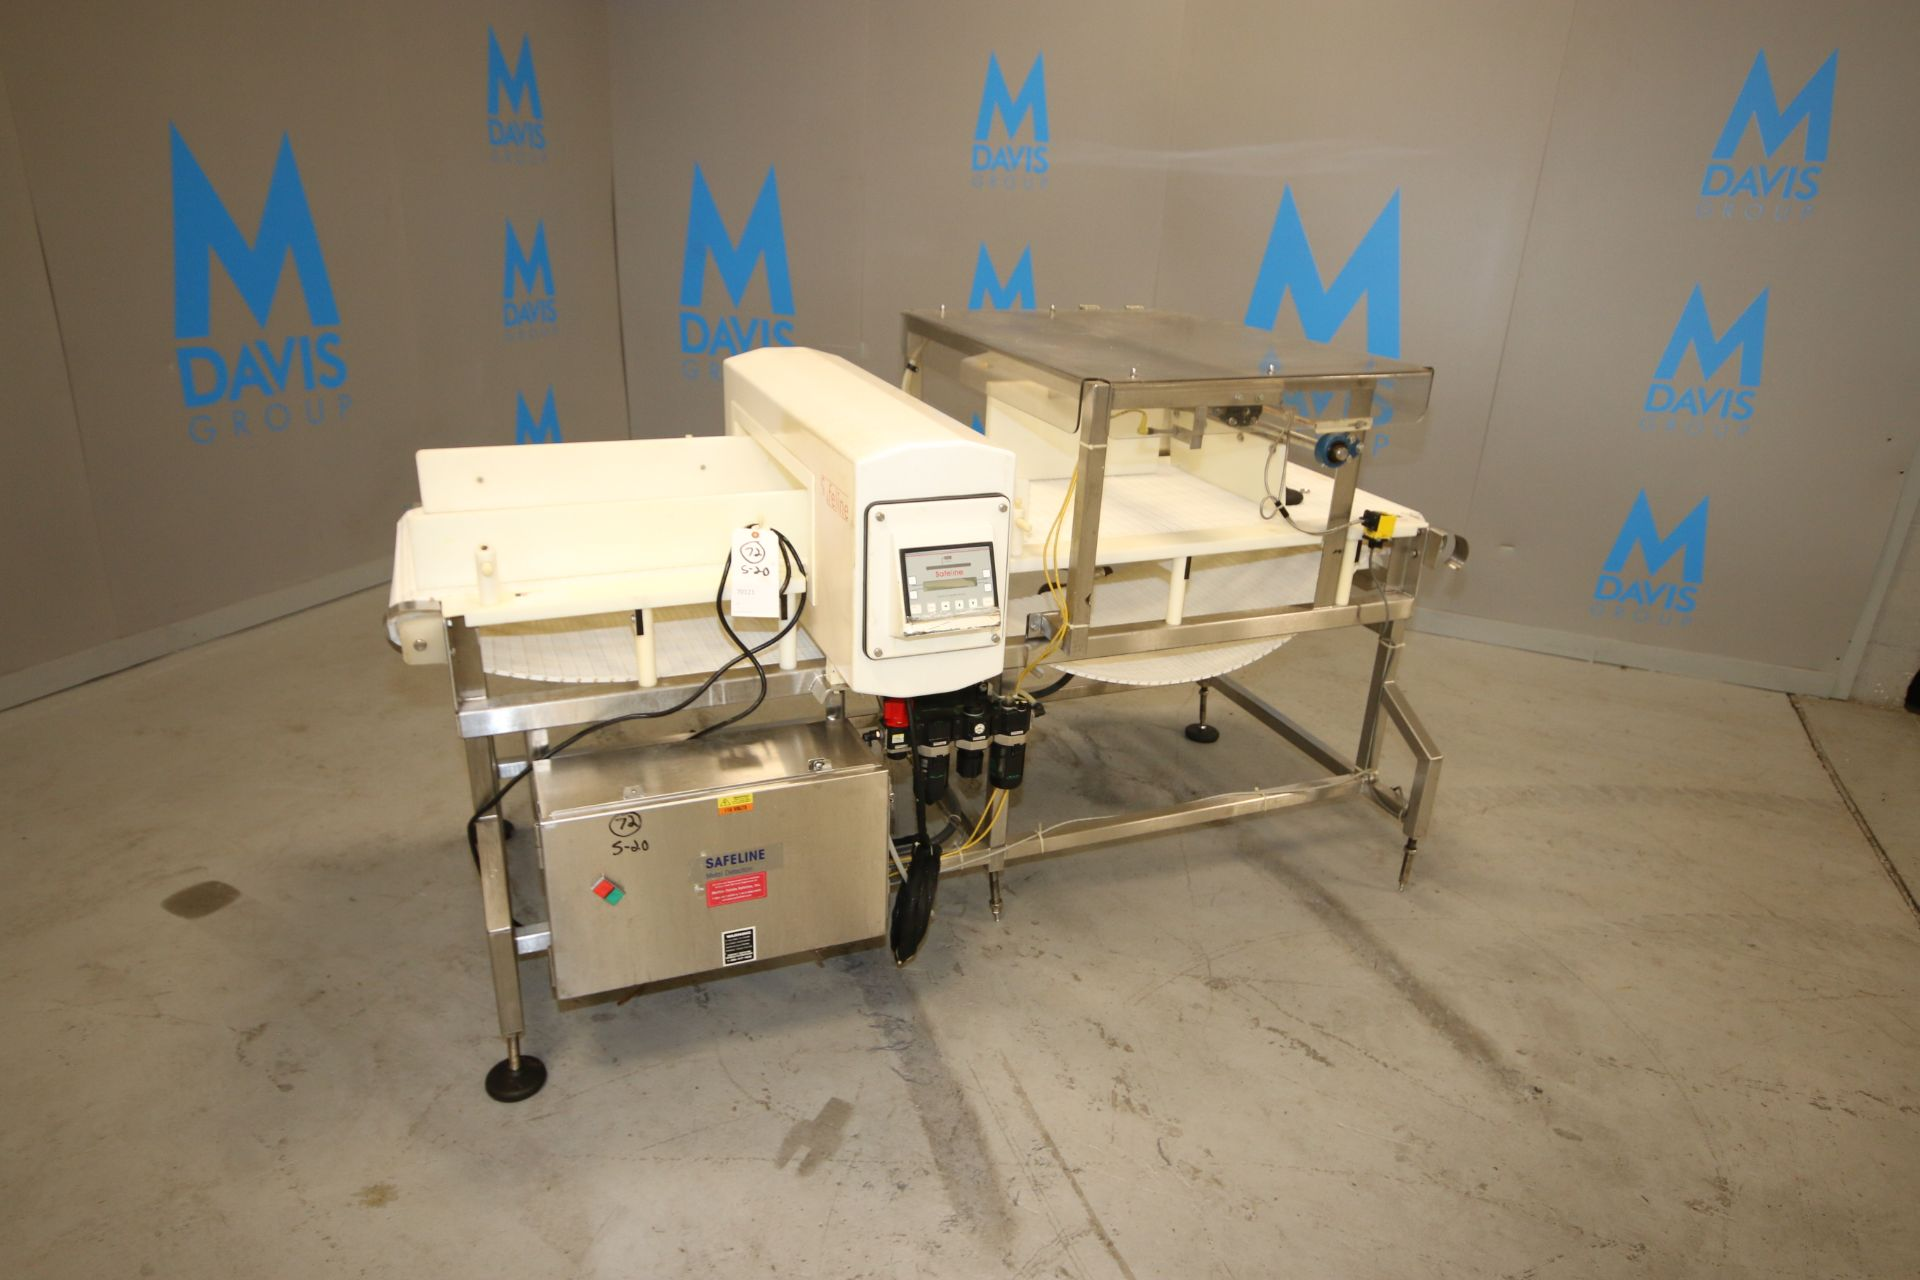 Lot 16 - Safeline Metal Detector, M/N SL2000, S/N 26058-01, with 115 Volts, 1 Phase, with Drive, with